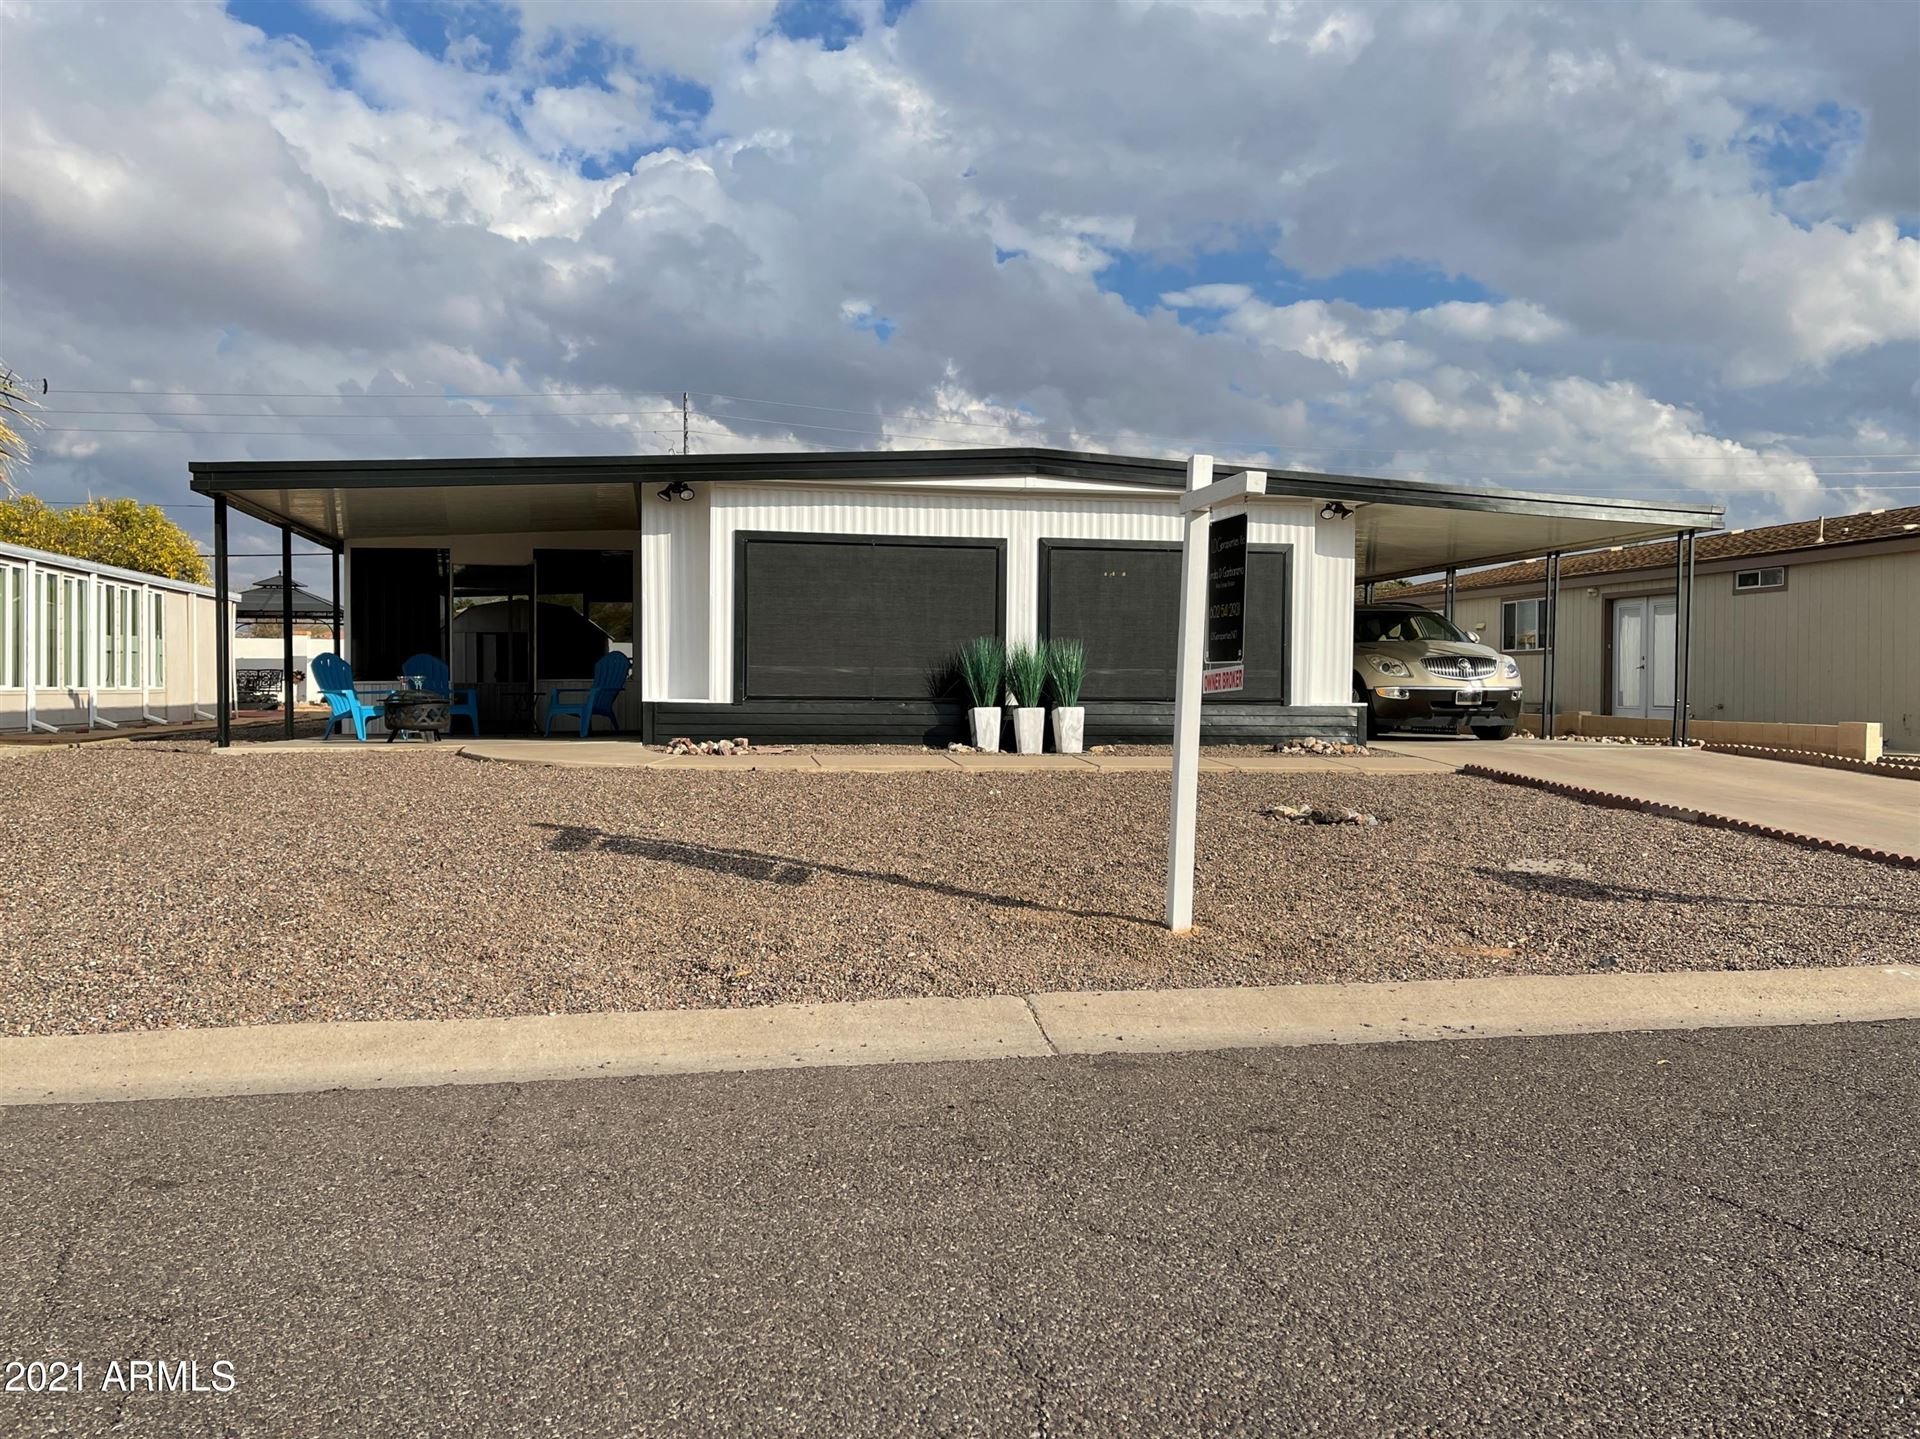 17435 N 15TH Place, Phoenix, AZ 85022 - MLS#: 6184843